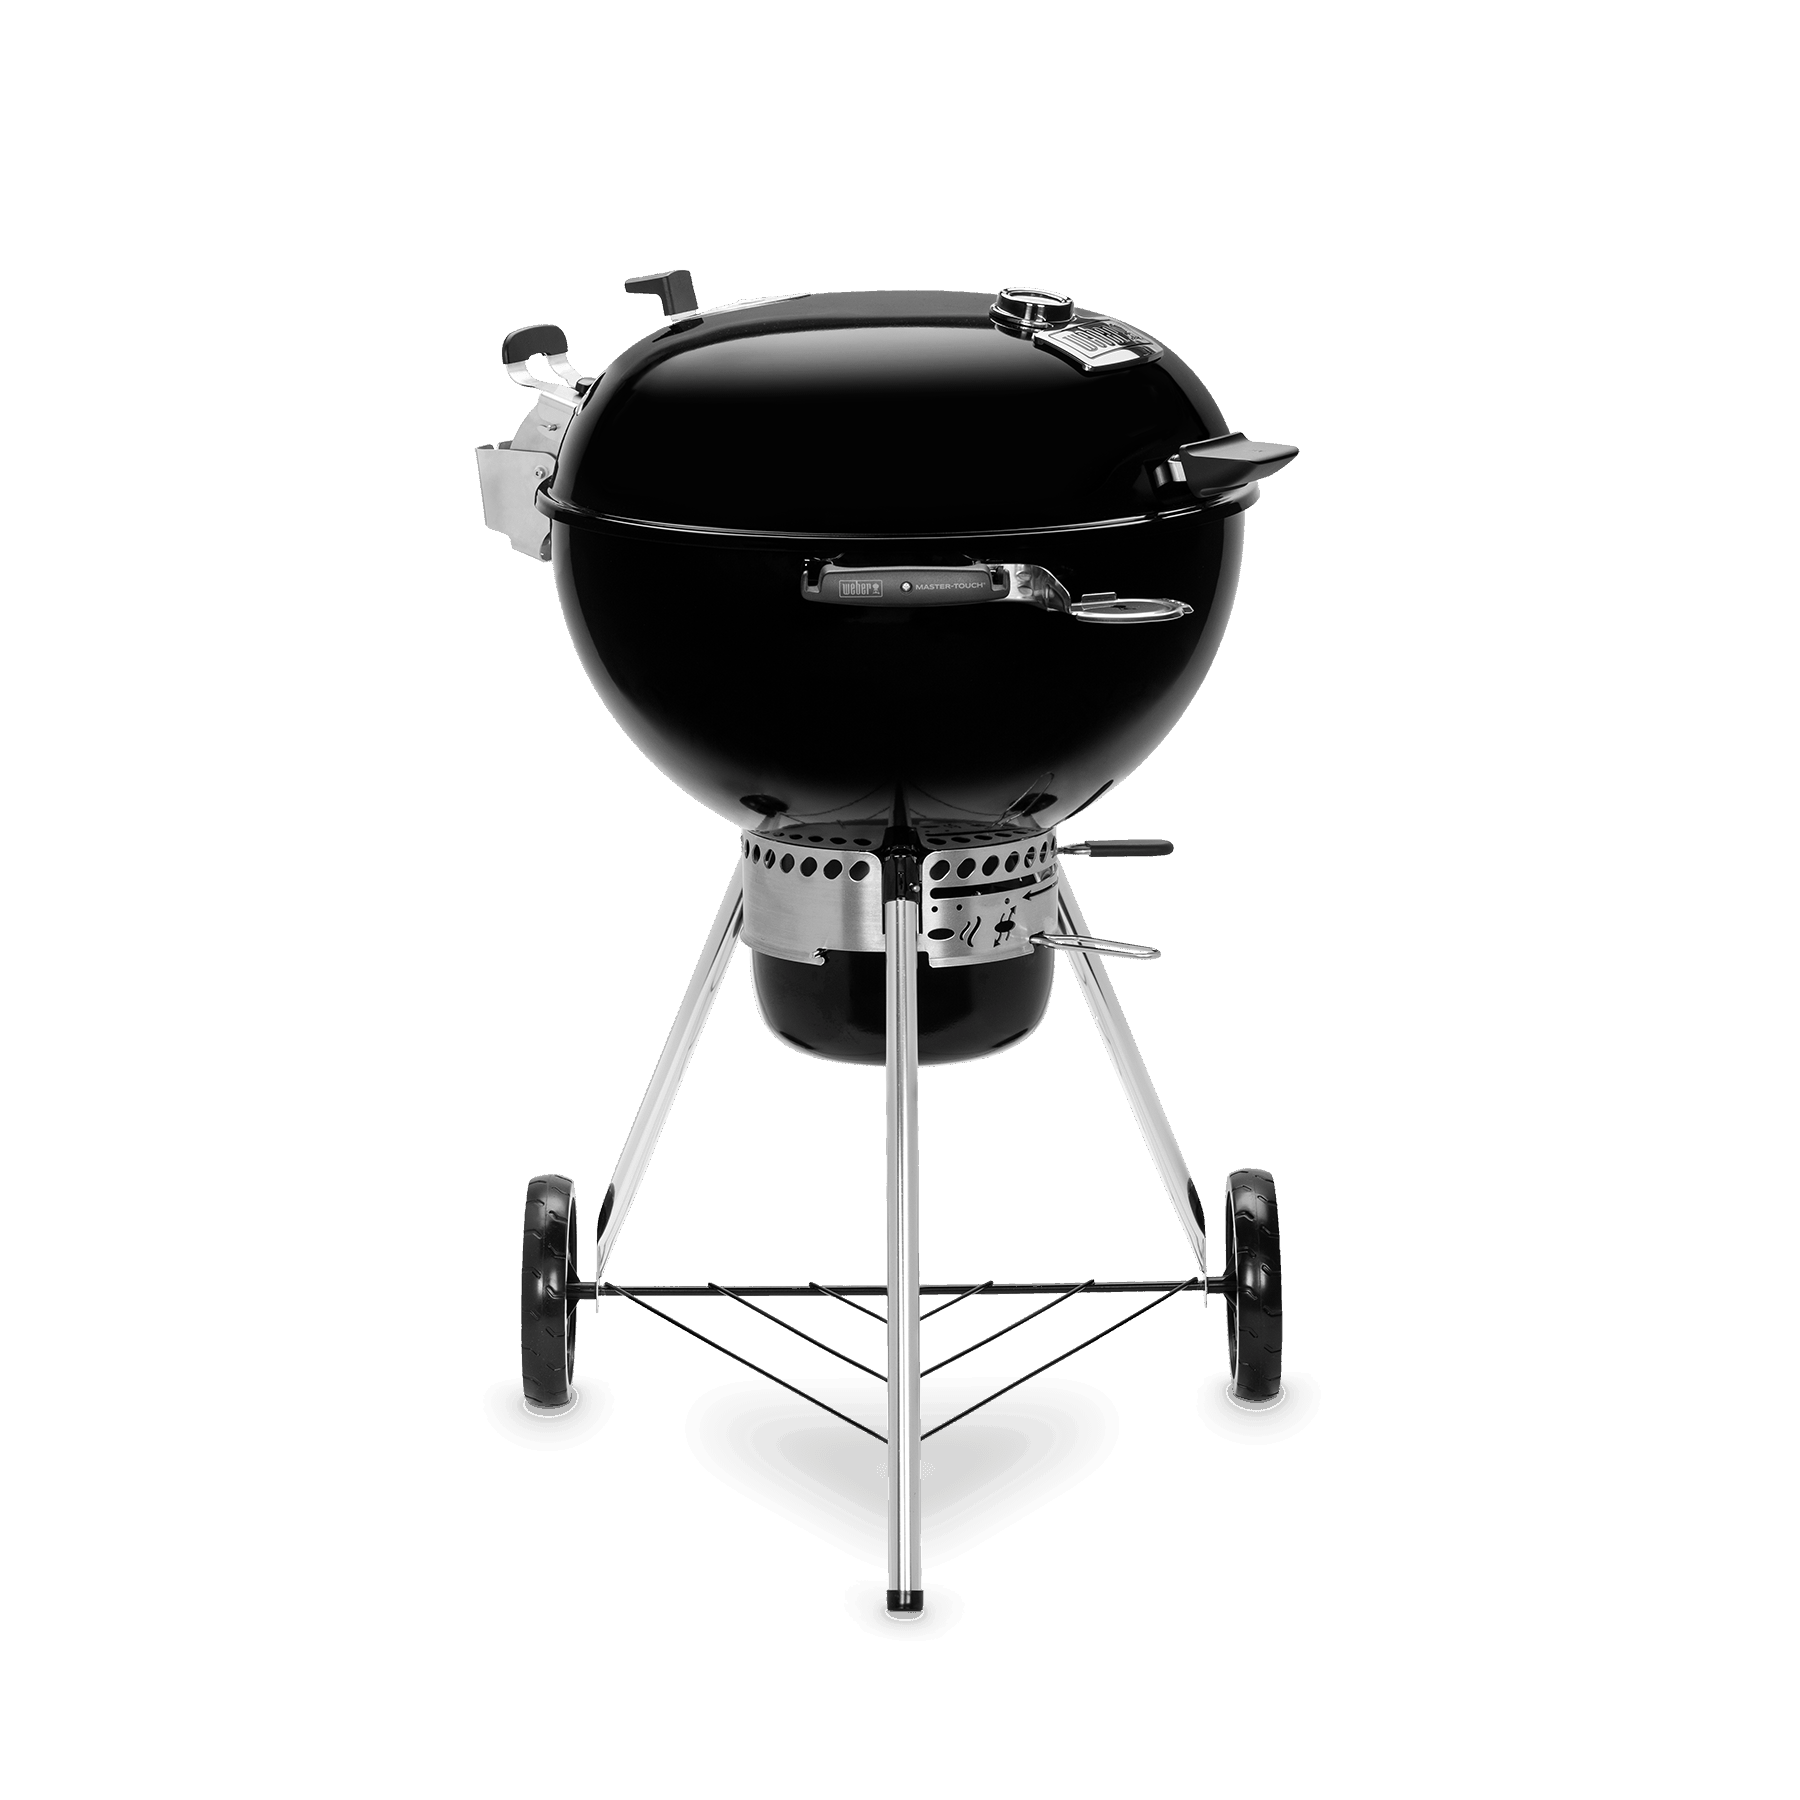 Master-Touch GBS Premium E-5775 Charcoal Barbecue 57 cm